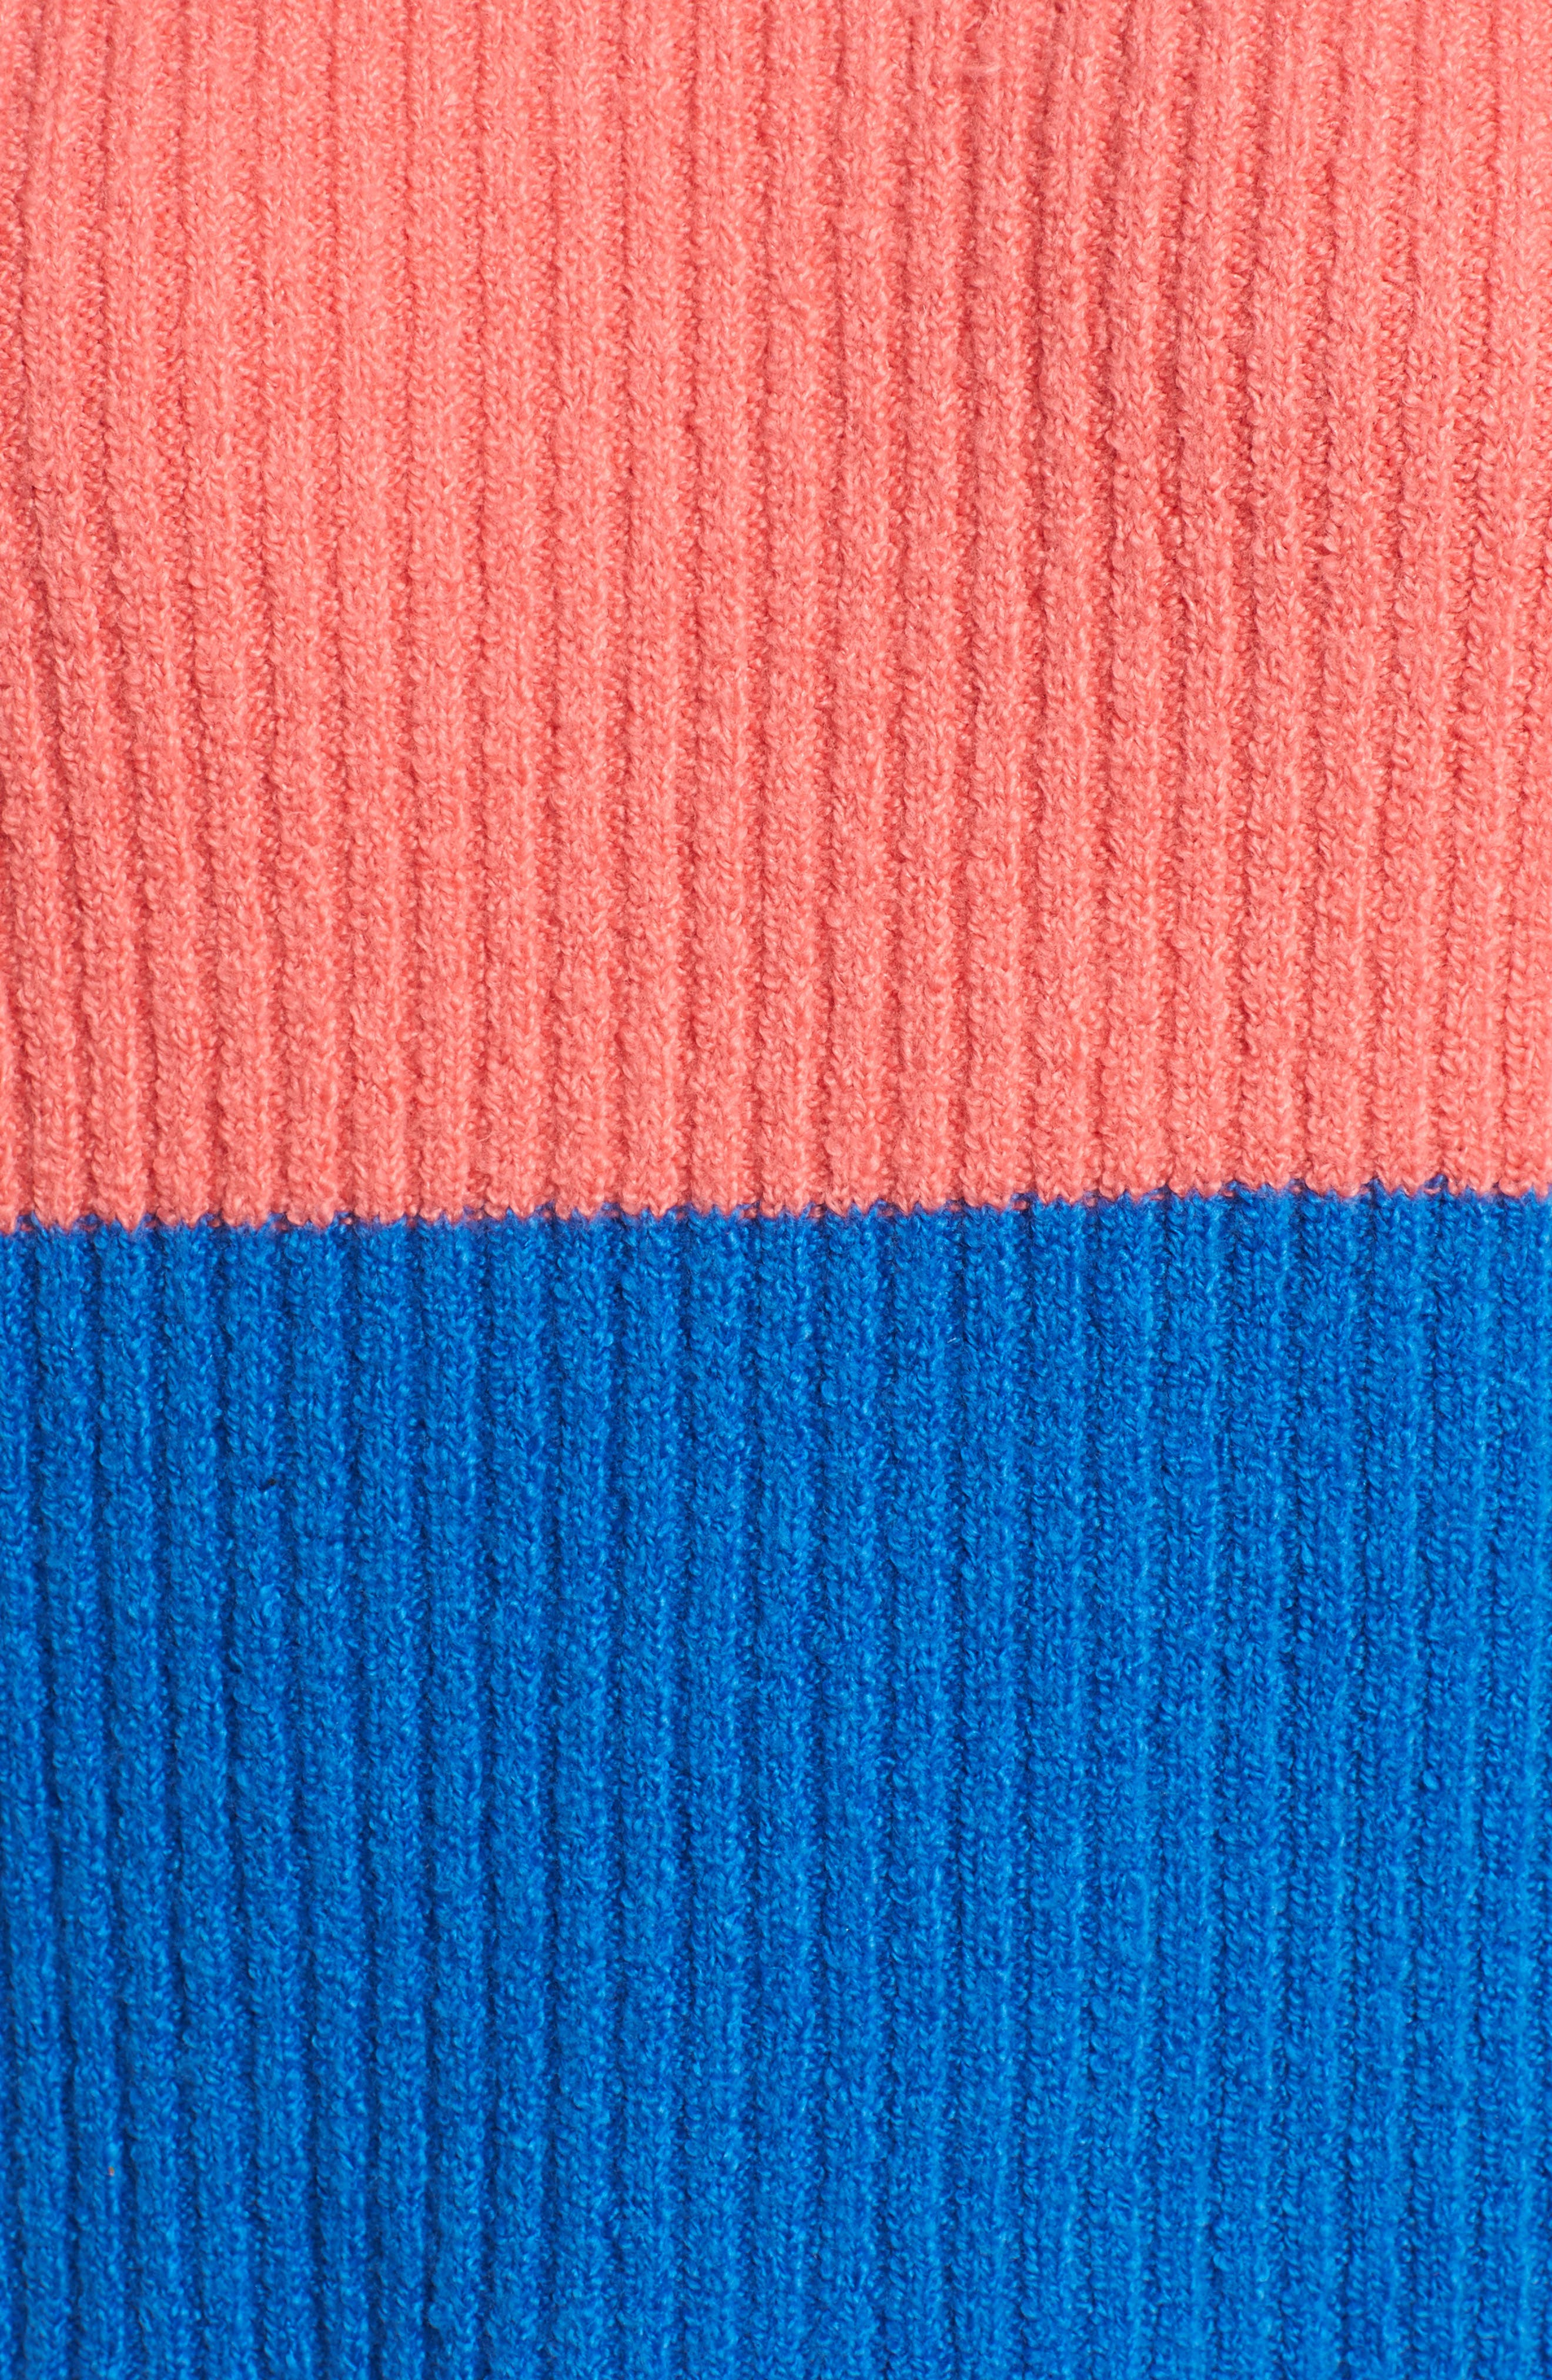 Rugby Stripe Sweater,                             Alternate thumbnail 7, color,                             BLUE BOAT COURTNEY STRIPE